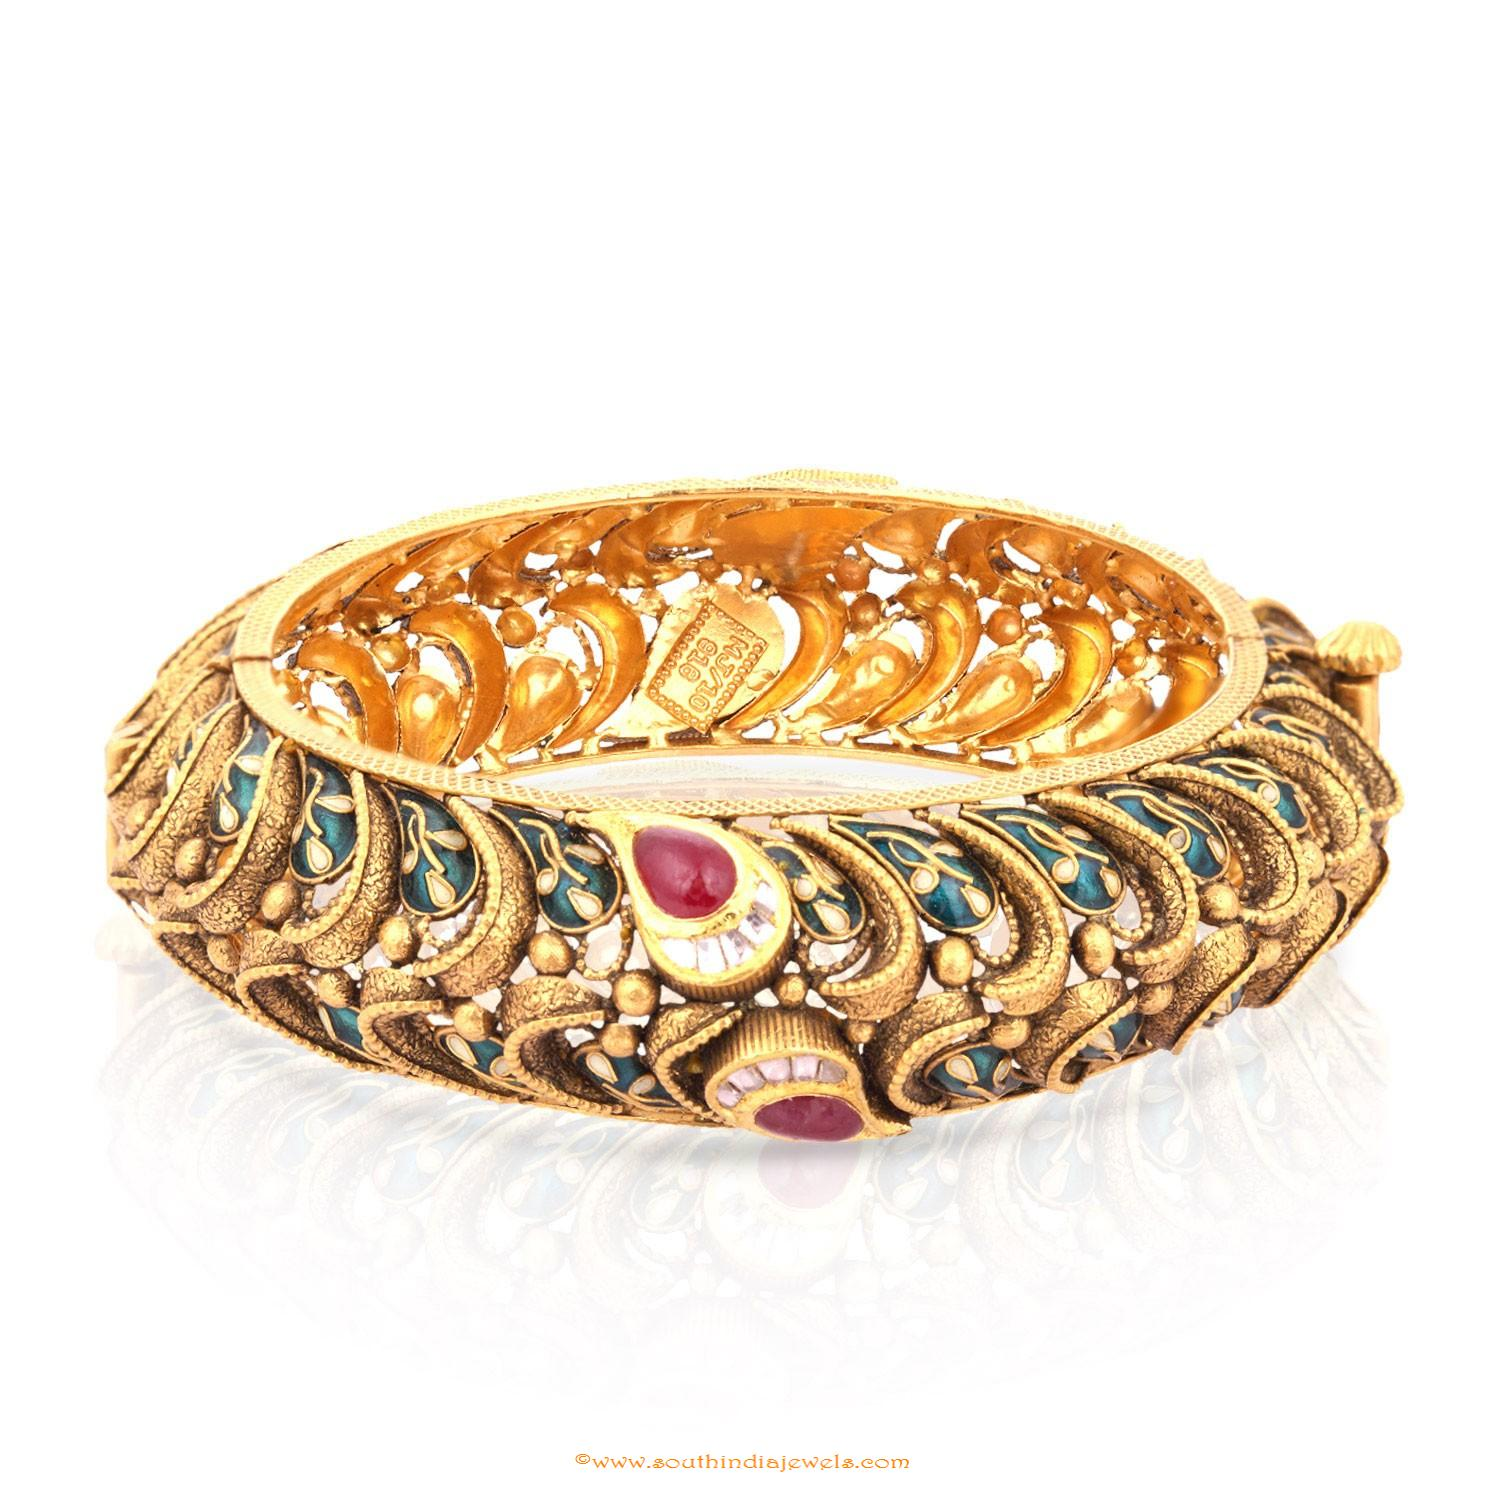 Gold Bangle Design From Malabar Gold & Diamonds ~ South India Jewels